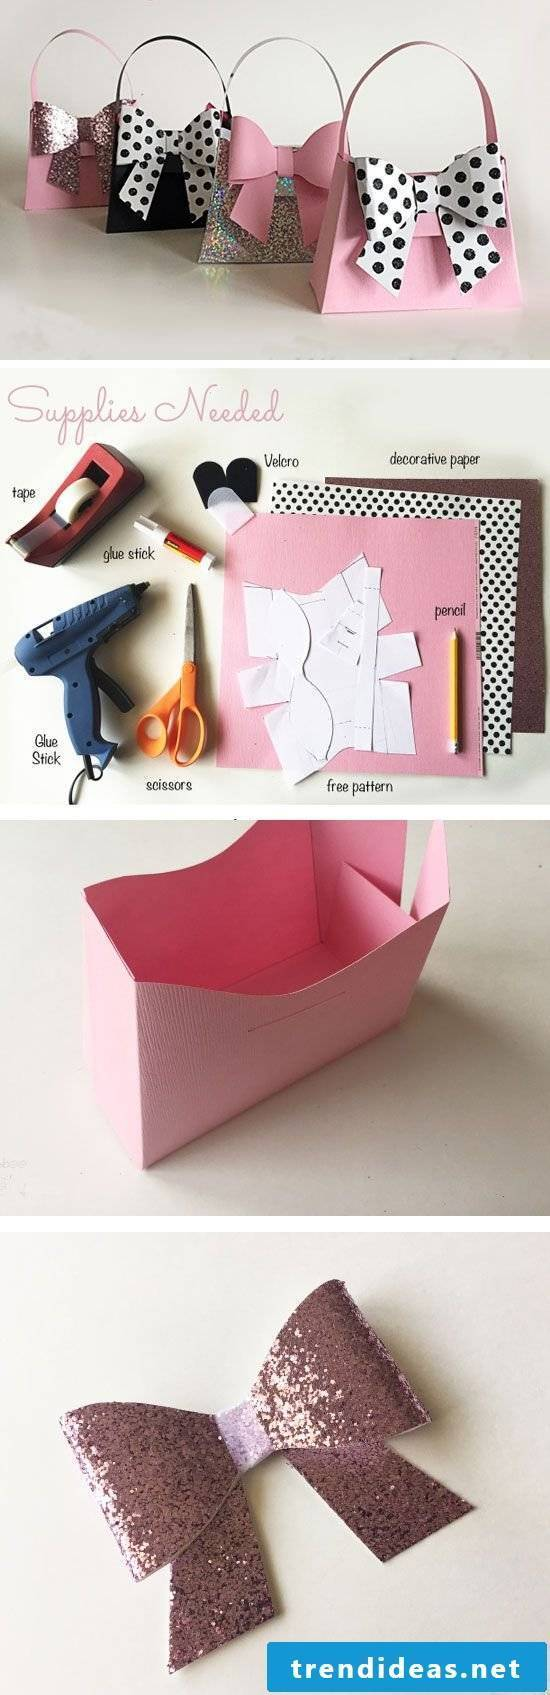 Box fold in the form of a bag